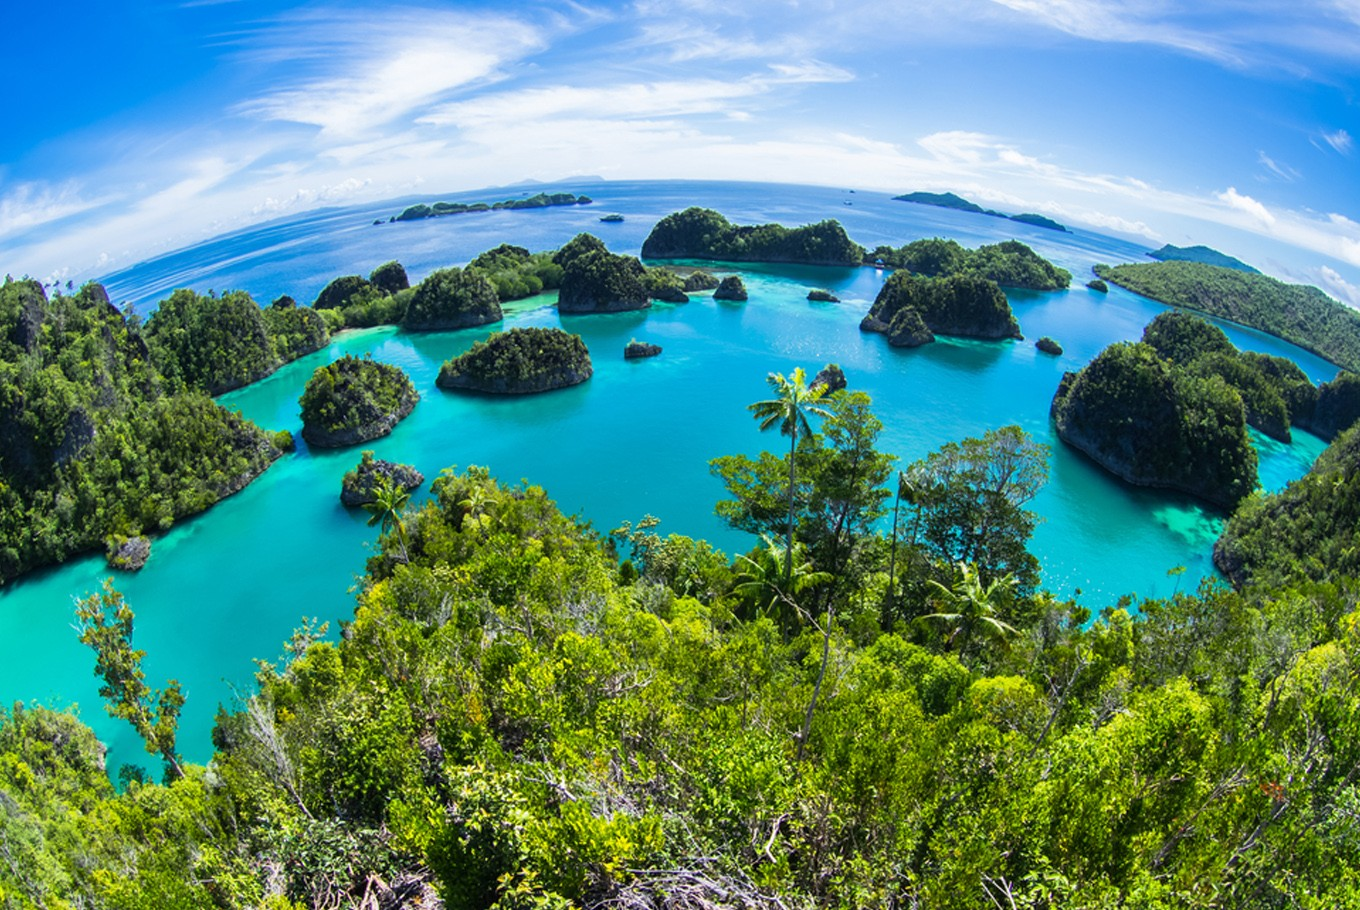 Guide to visiting Raja Ampat for first-timers